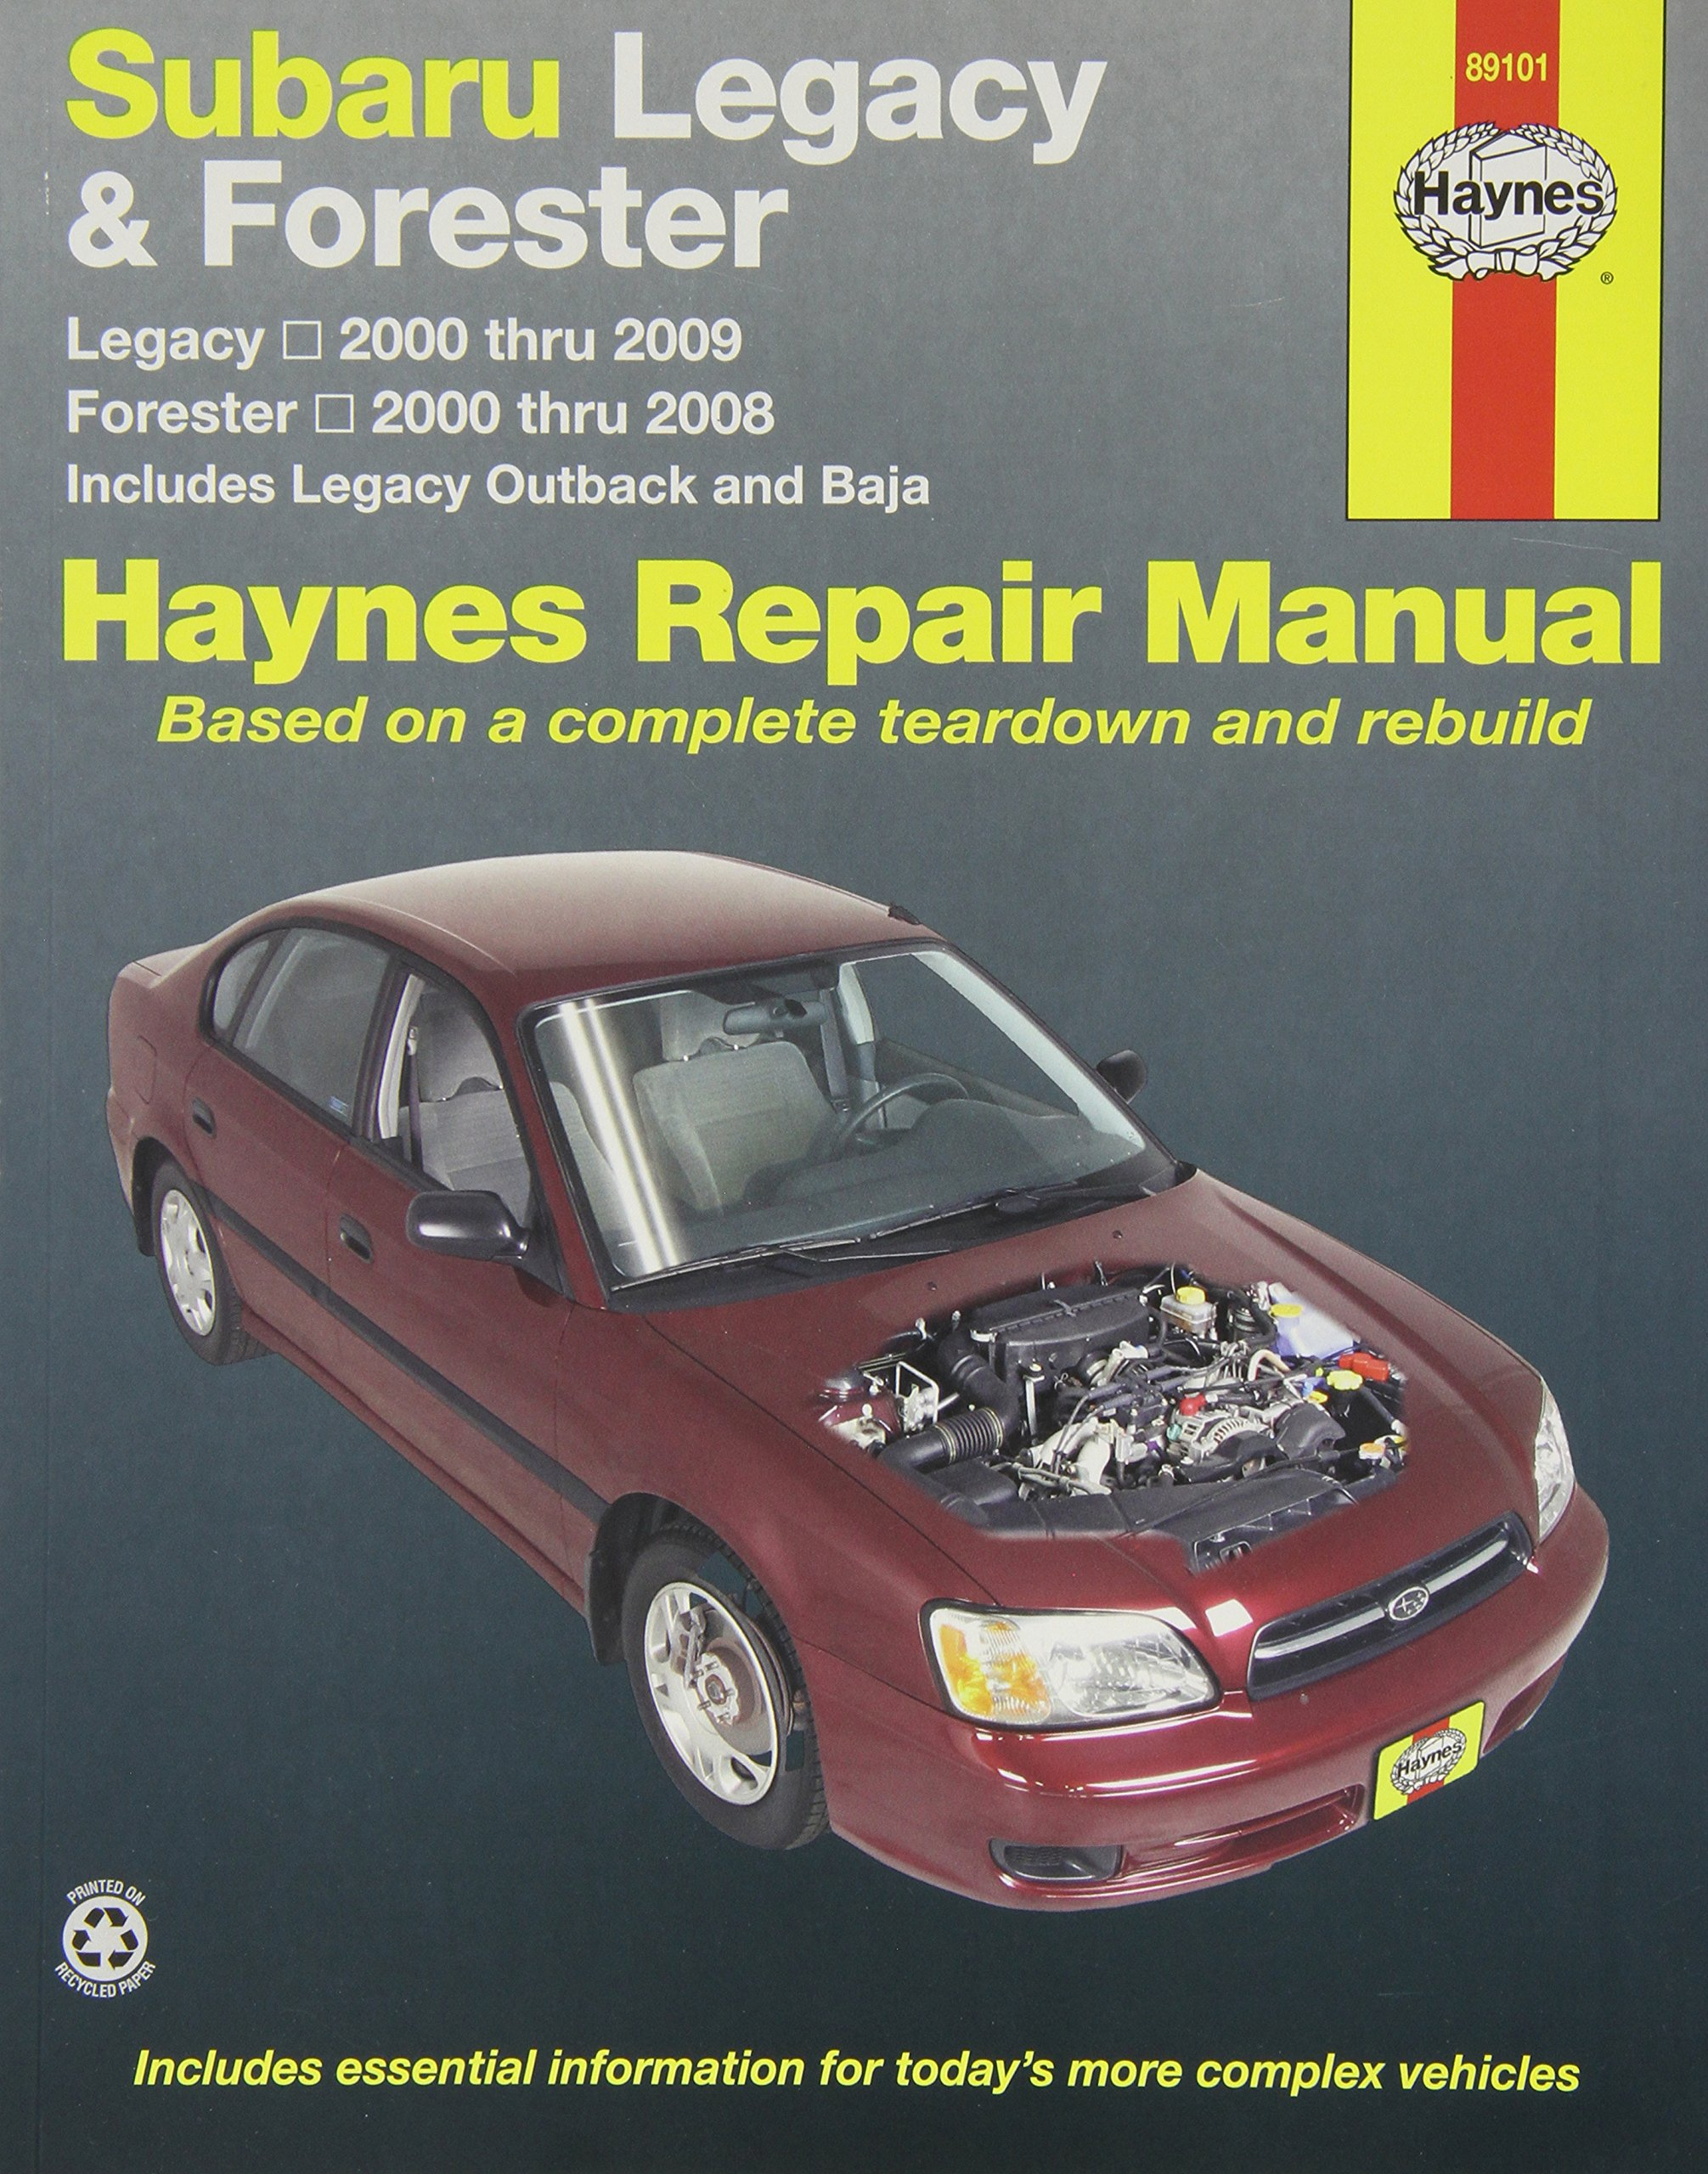 Amazon.com: Haynes Publications, Inc. 89101 Repair Manual (0038345891014):  Books